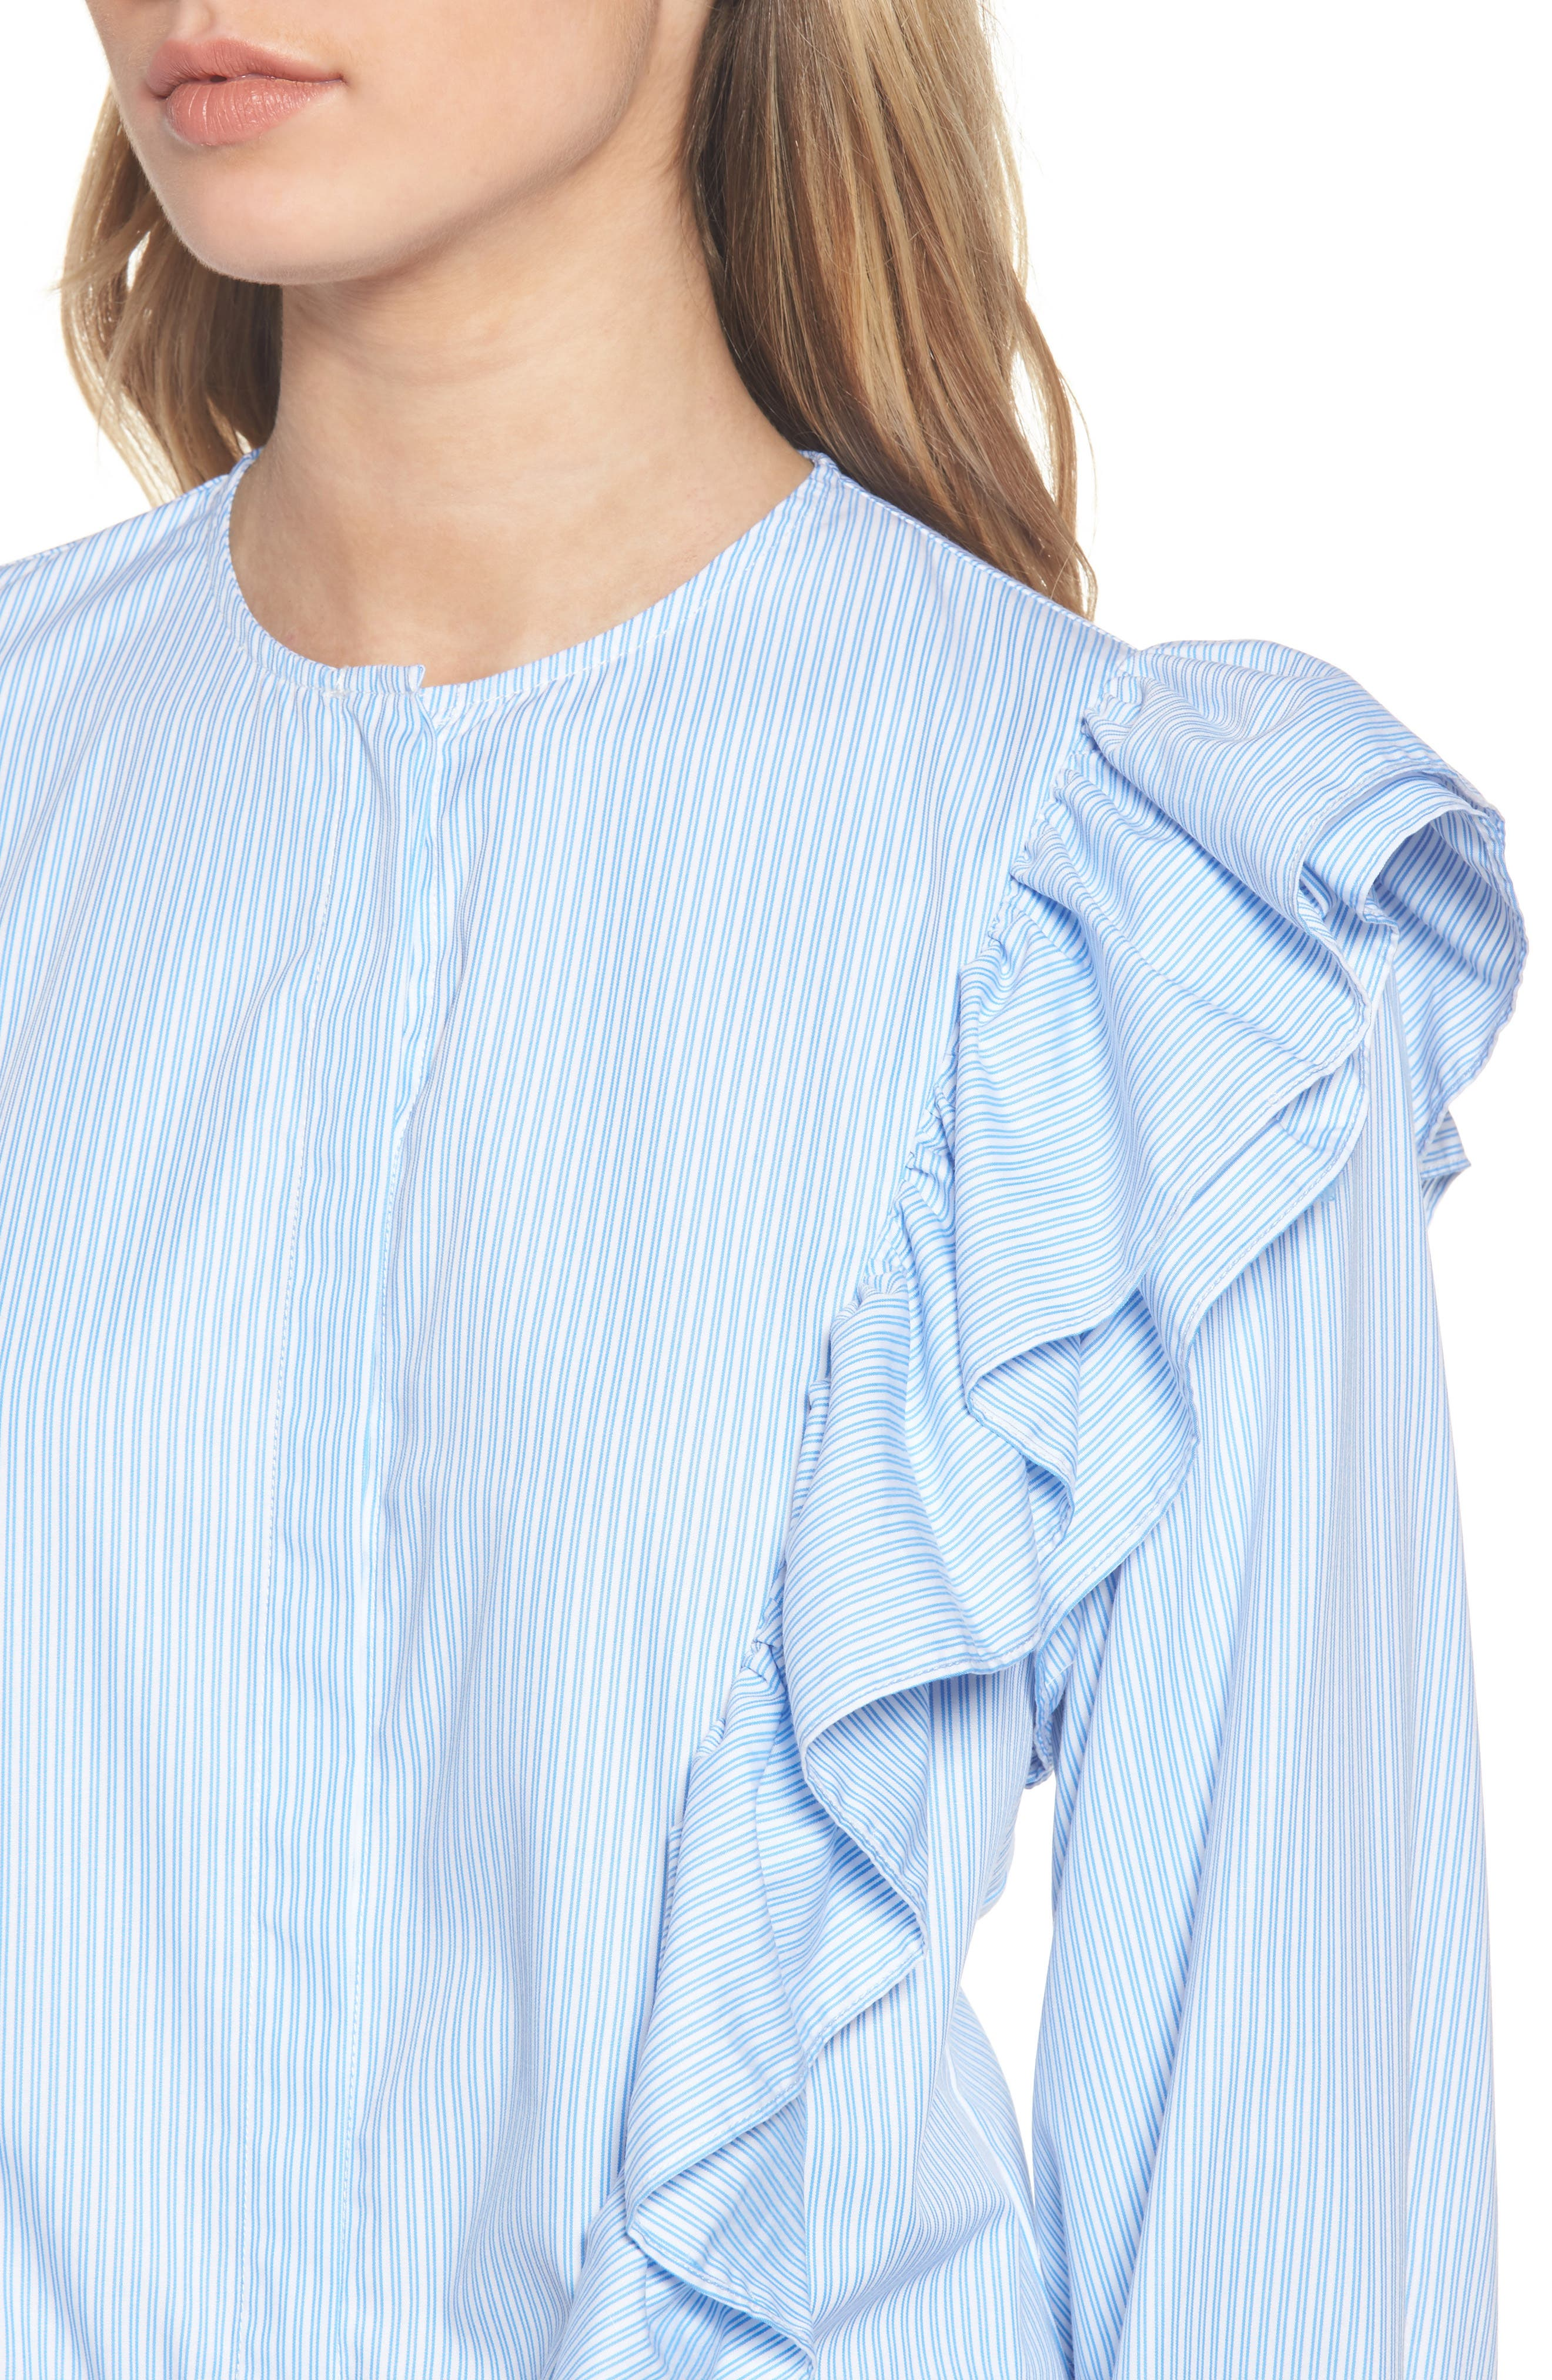 Girl Meets Boy Ruffle Top,                             Alternate thumbnail 5, color,                             Striped Blue